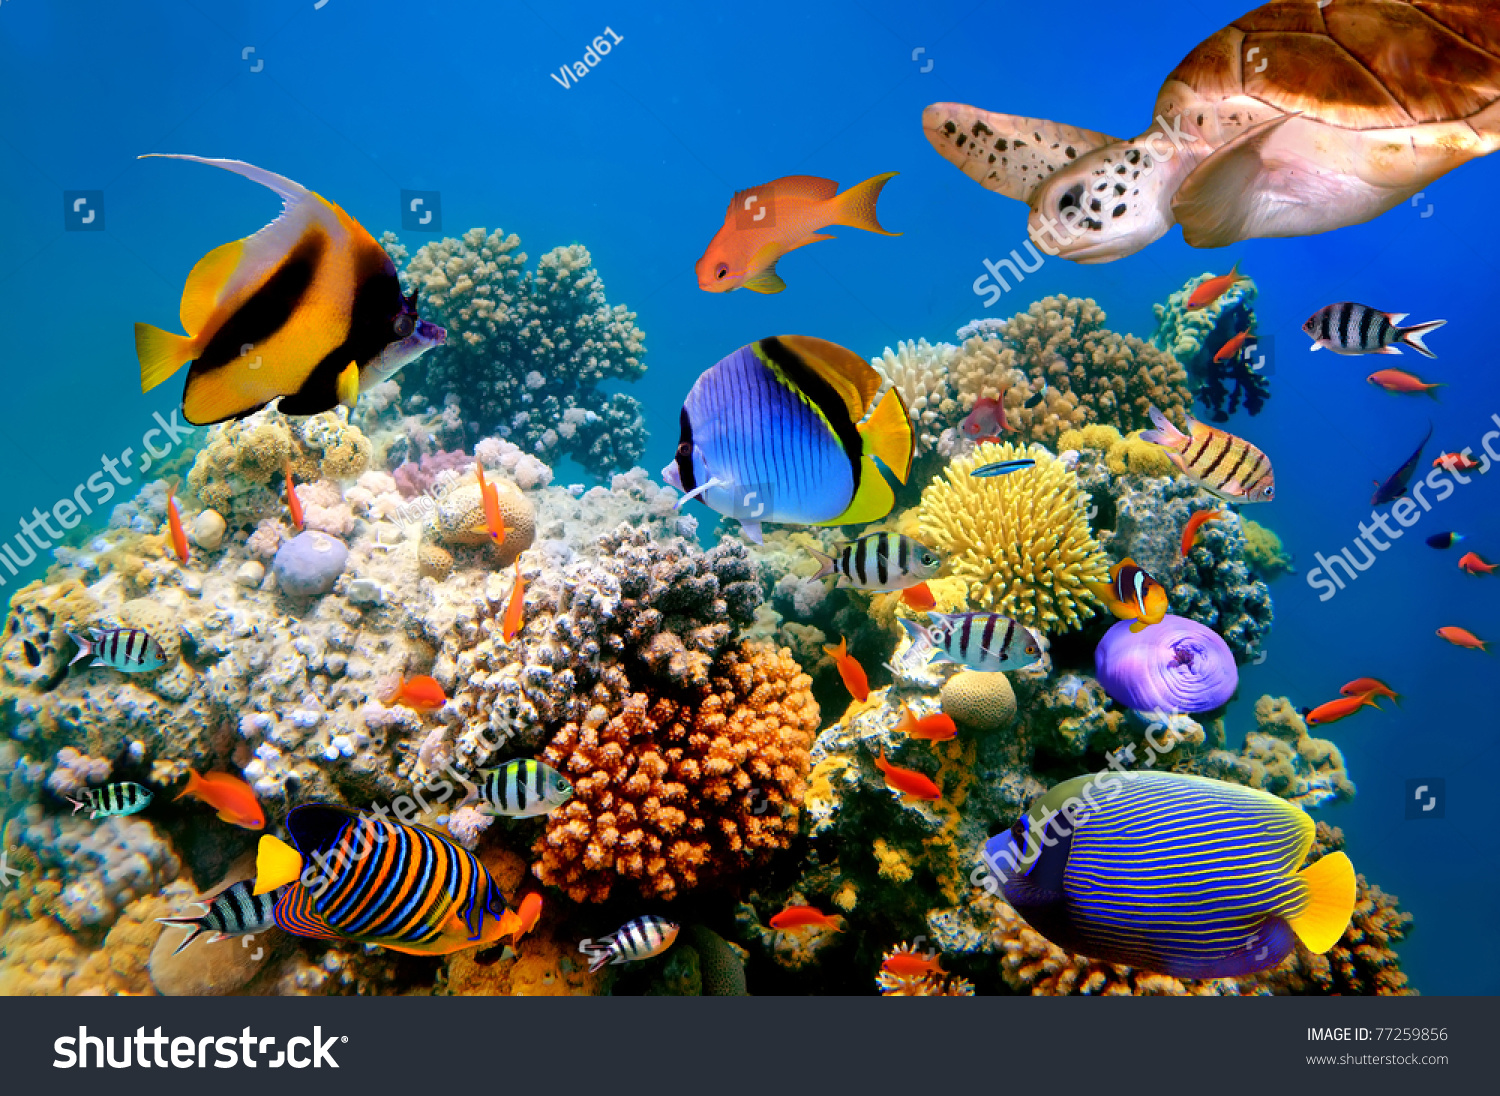 Photo Of A Tropical Fish And Turtle On A Coral Reef - 77259856 ...